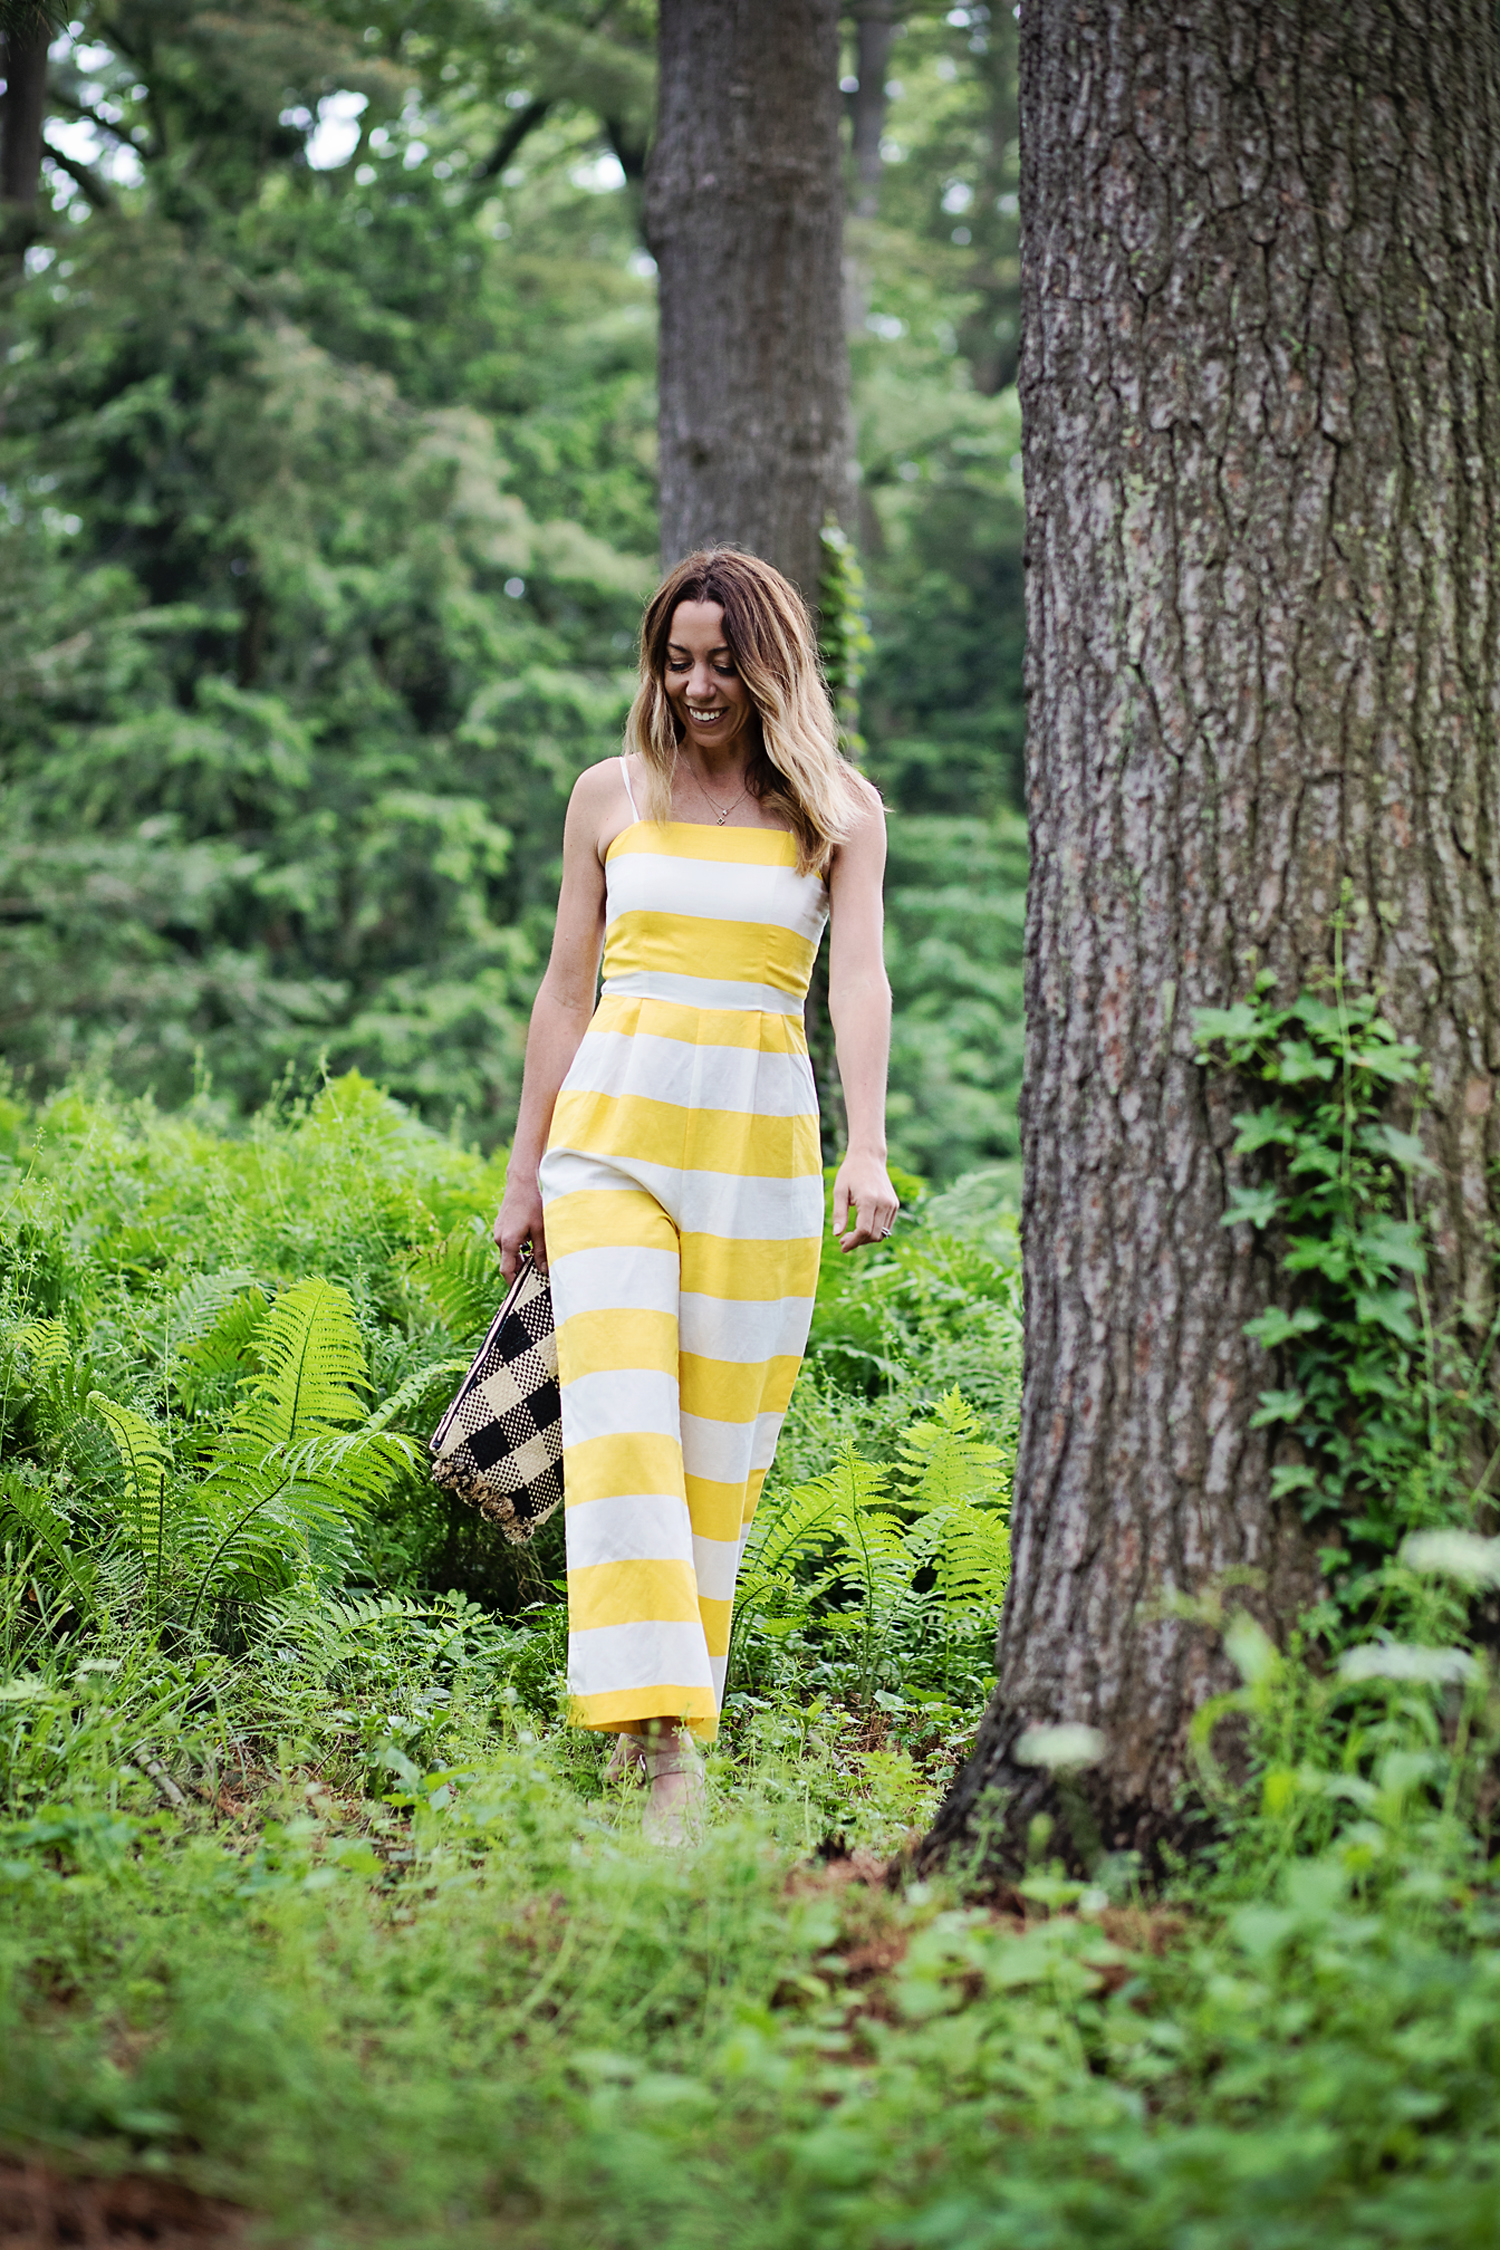 The Motherchic wearing striped jumpsuit